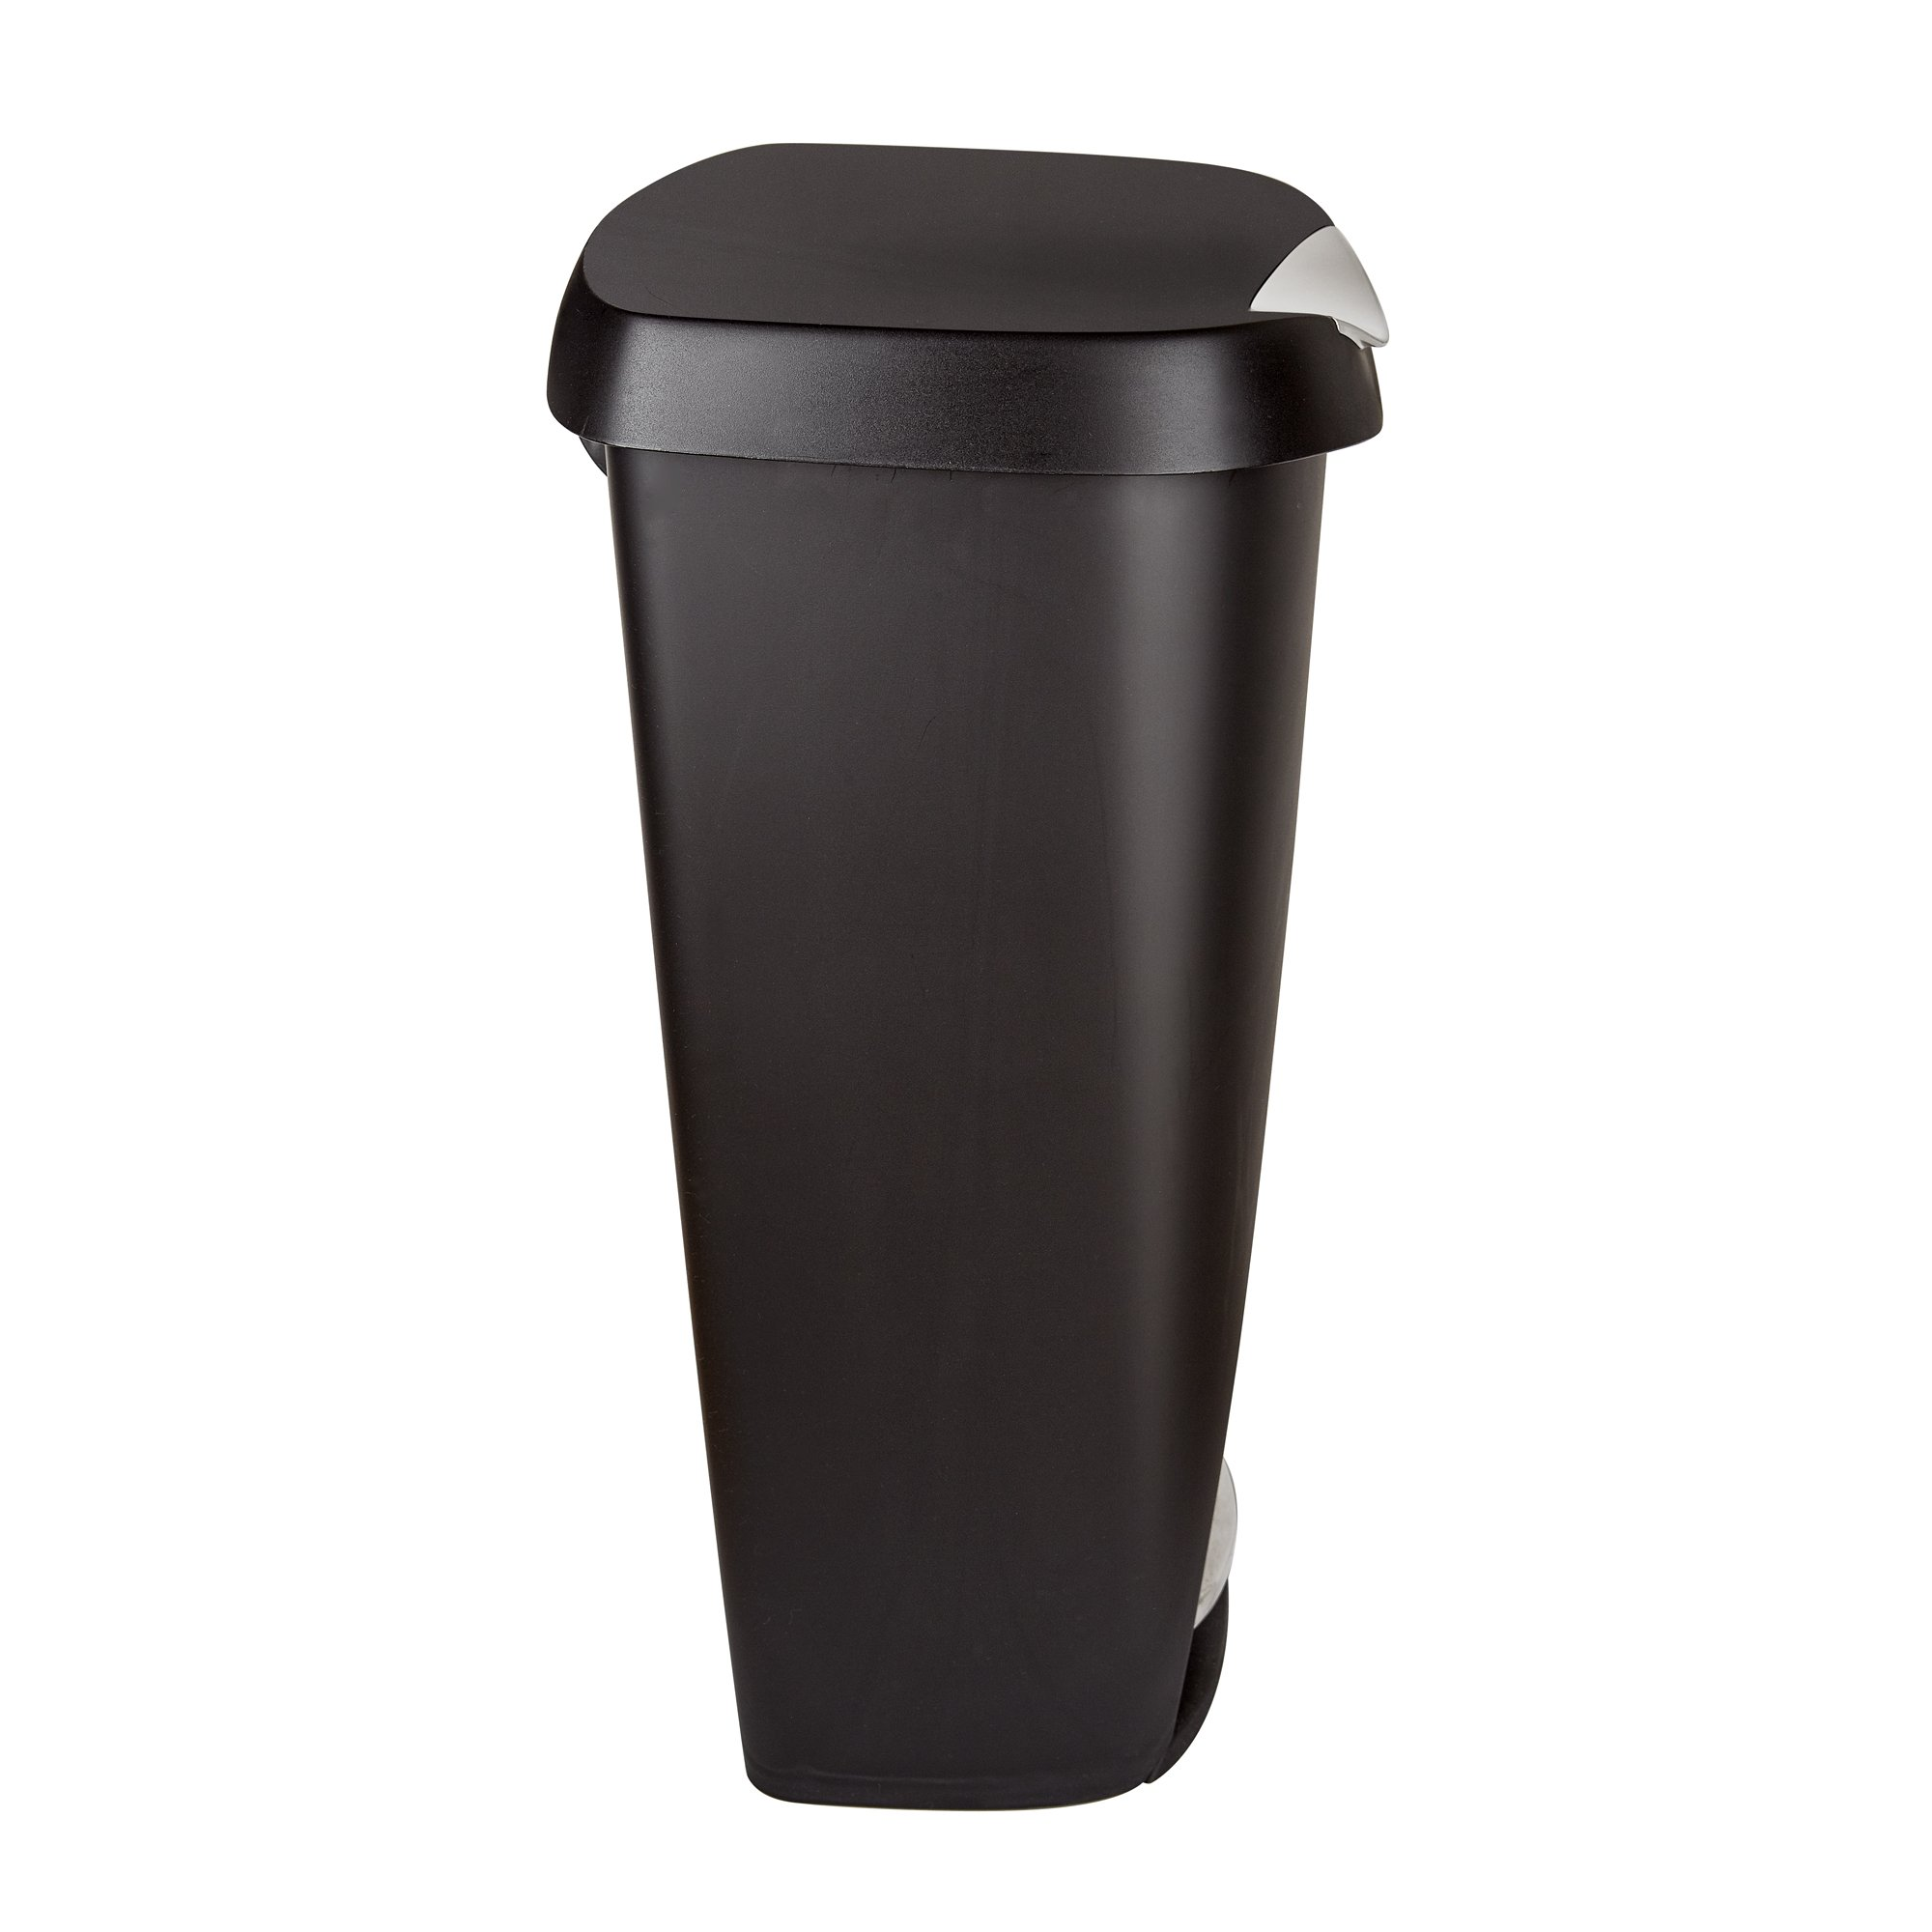 Umbra Brim Large Kitchen Trash Can with Stainless Steel Foot Pedal ...